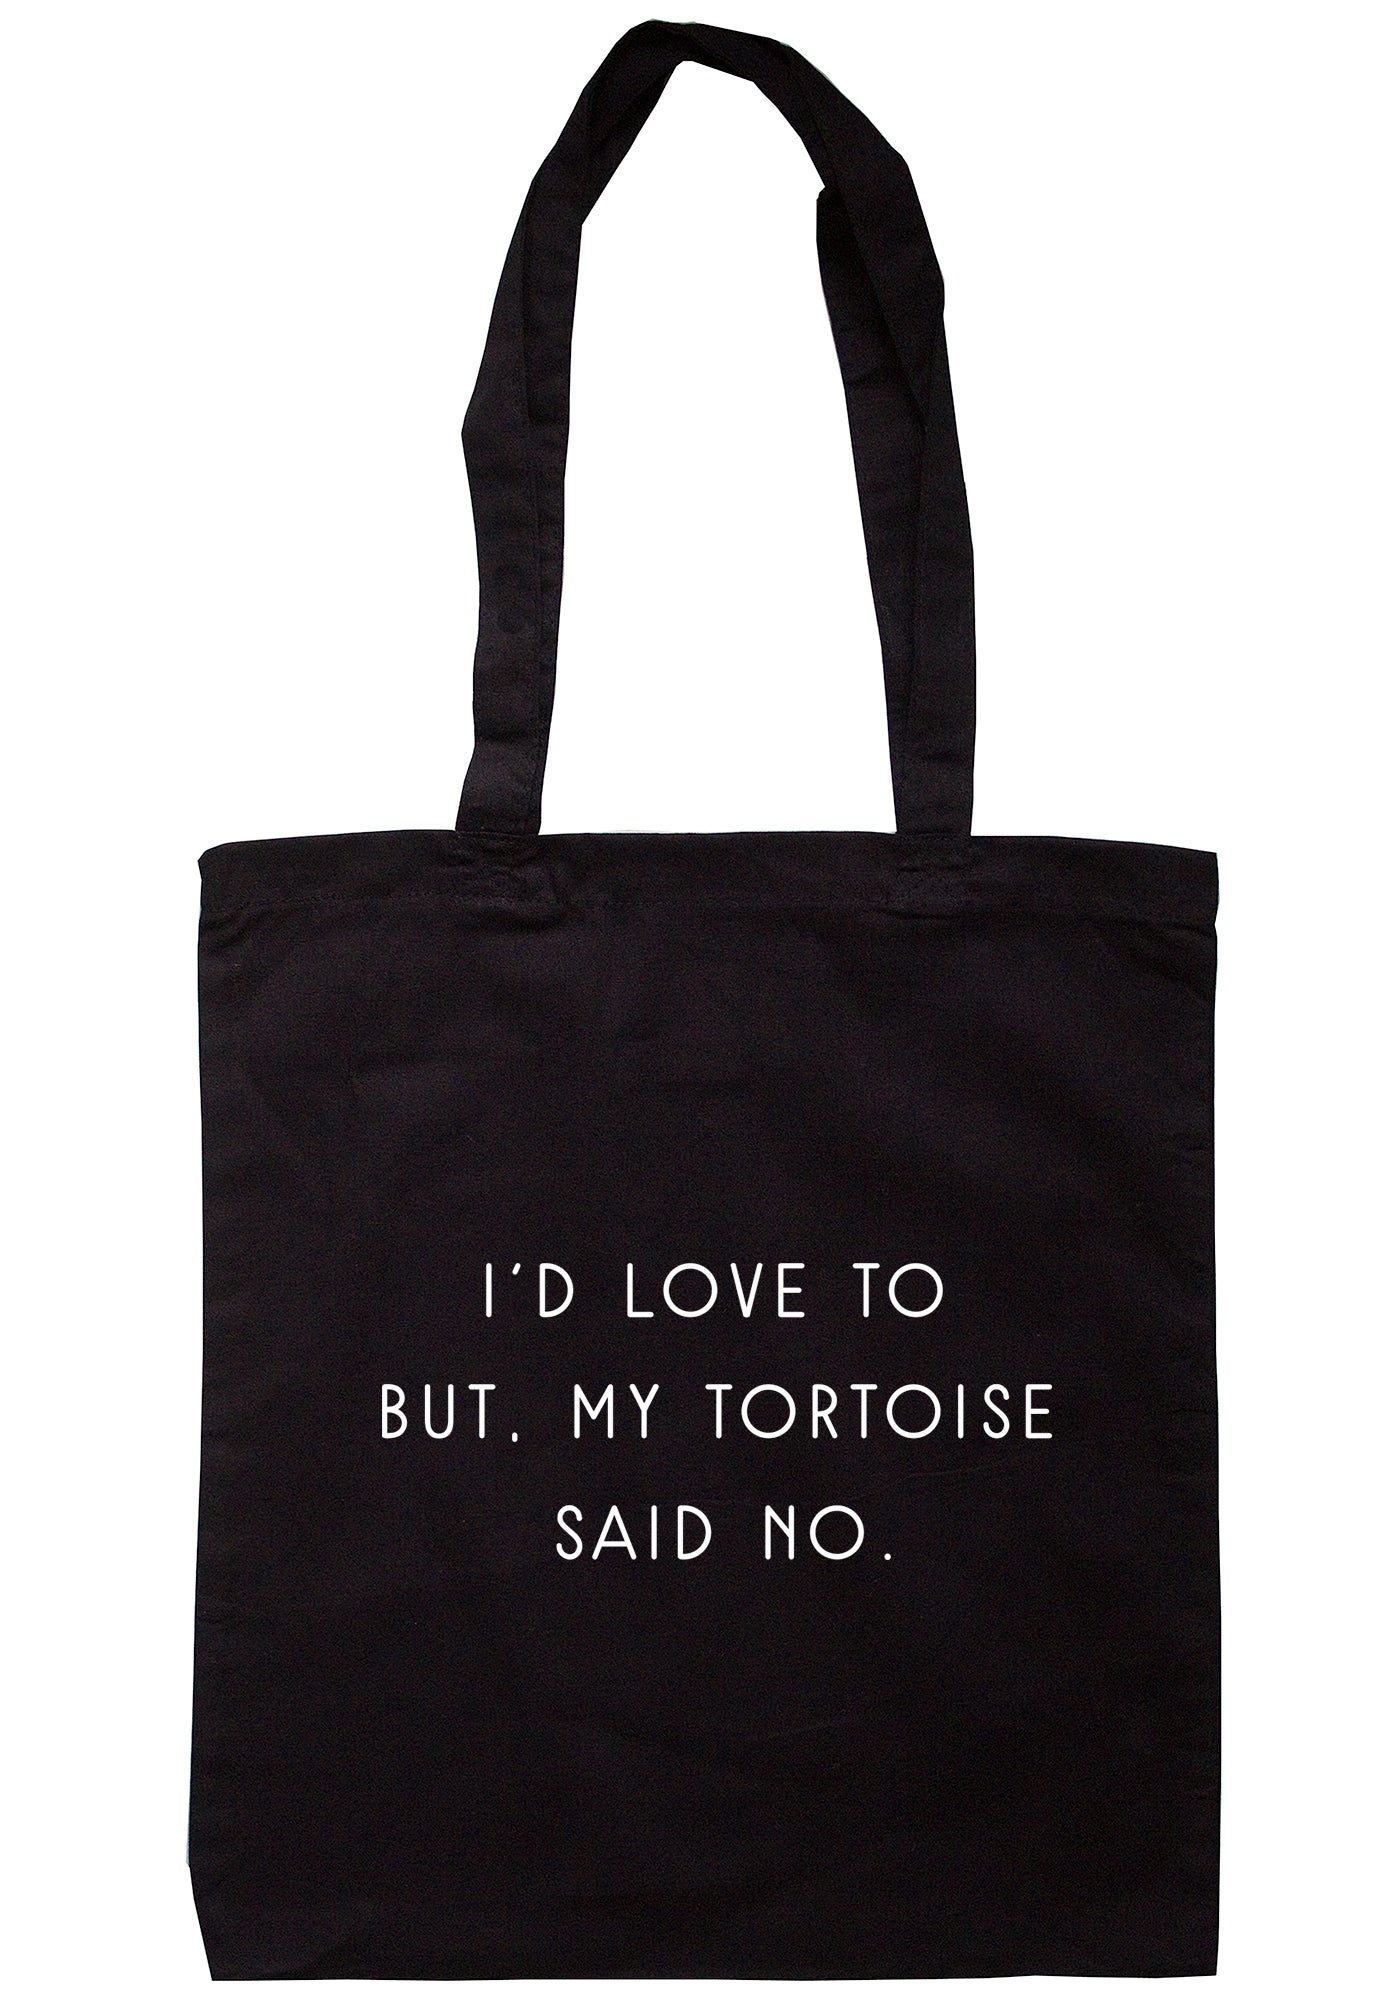 I'd Love To But, My Tortoise Said No Tote Bag S1074 - Illustrated Identity Ltd.